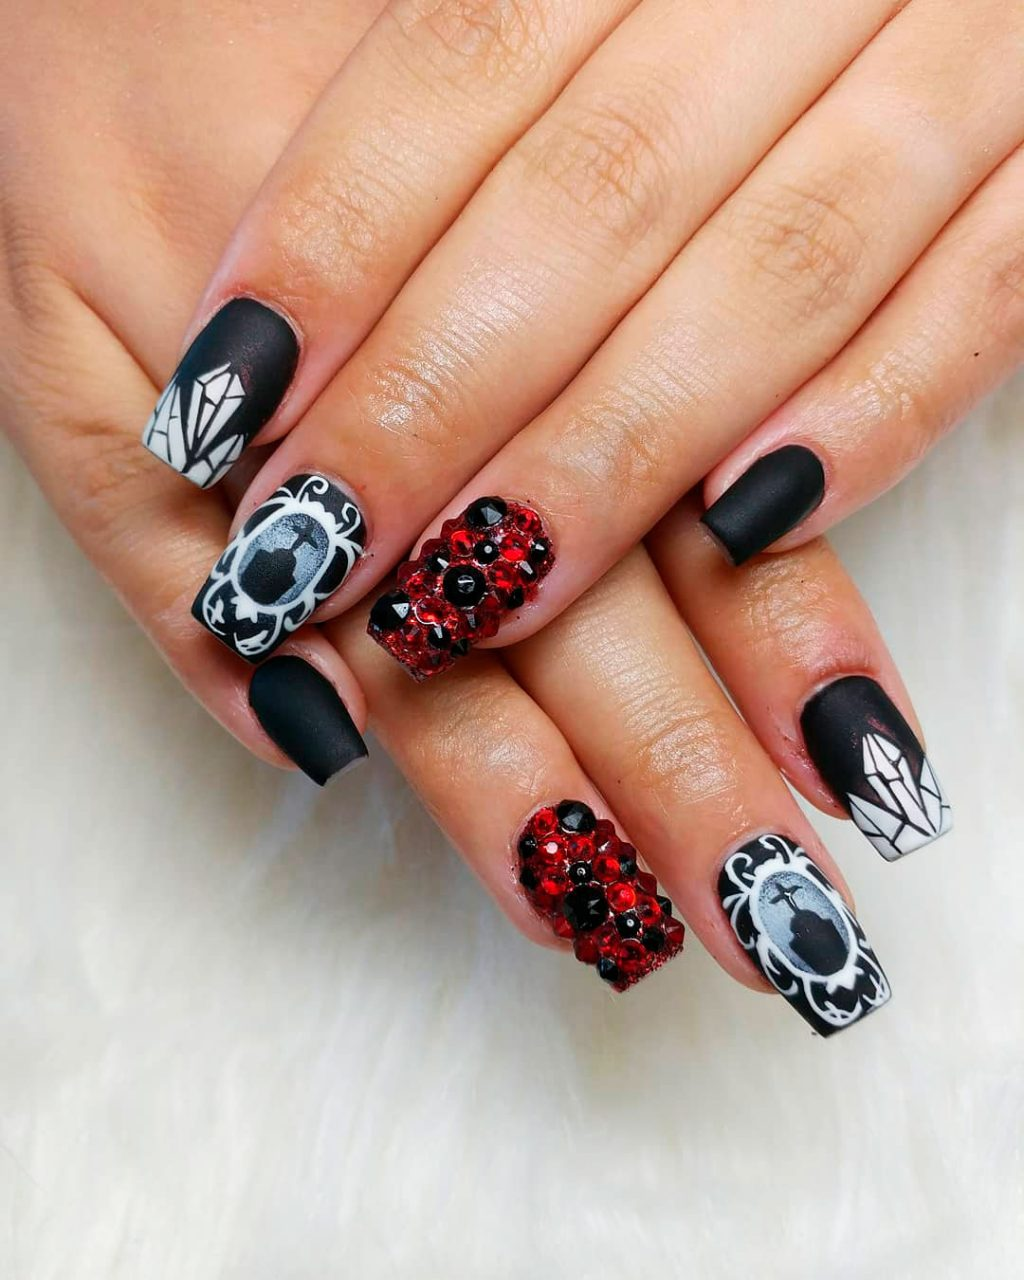 One of the Creepy black Halloween nail ideas!